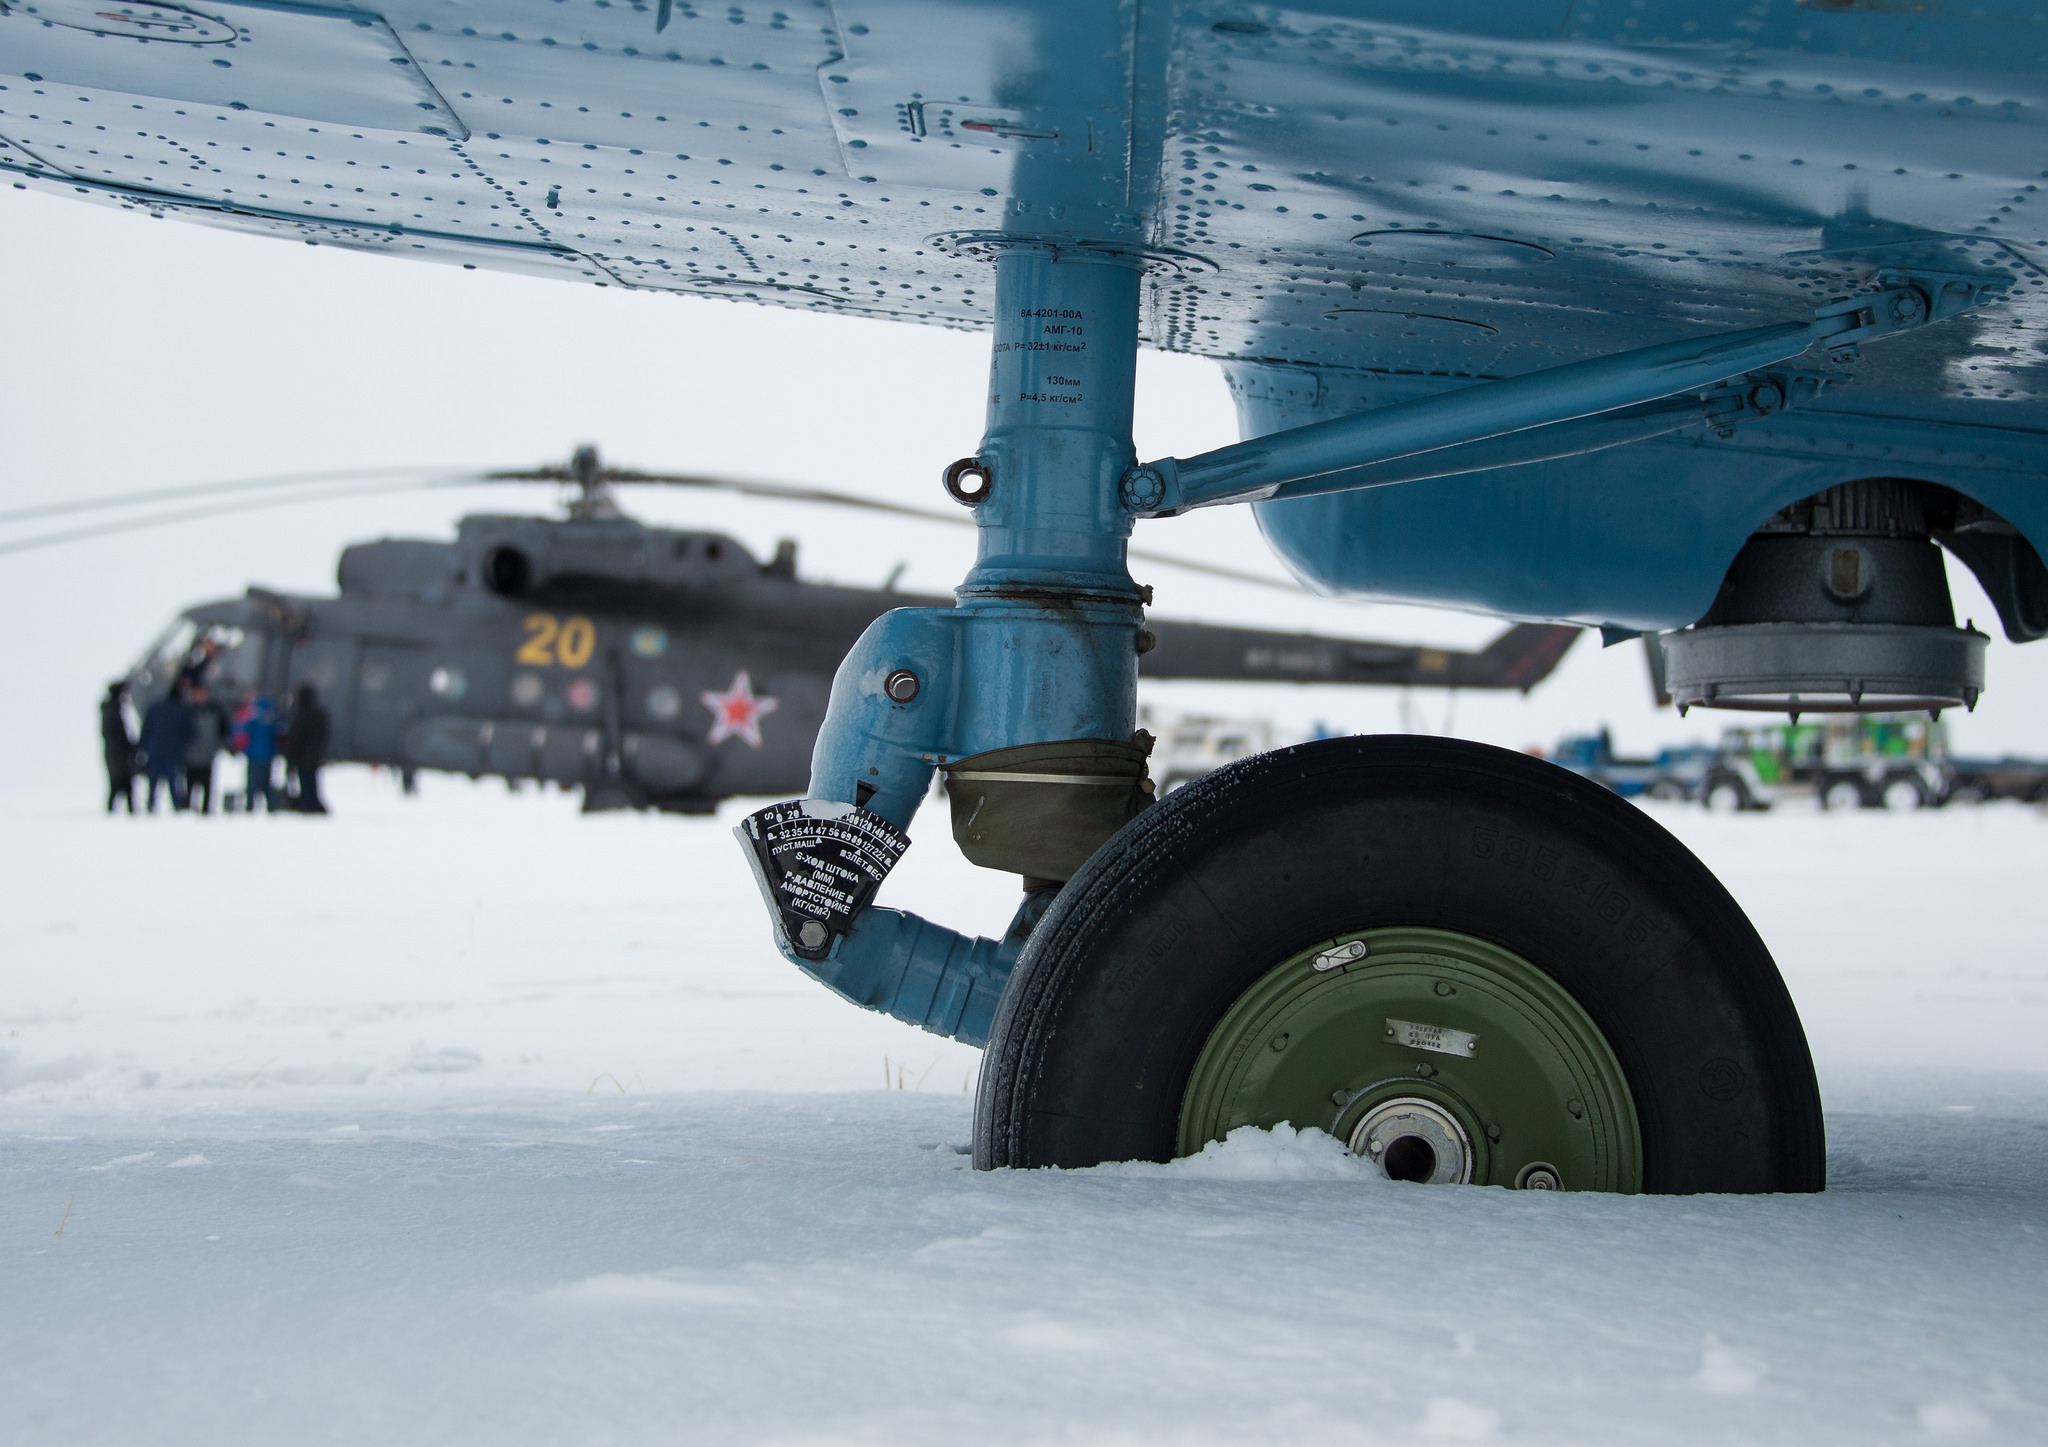 Russian MI-8 Helicopter Wheel in Snow